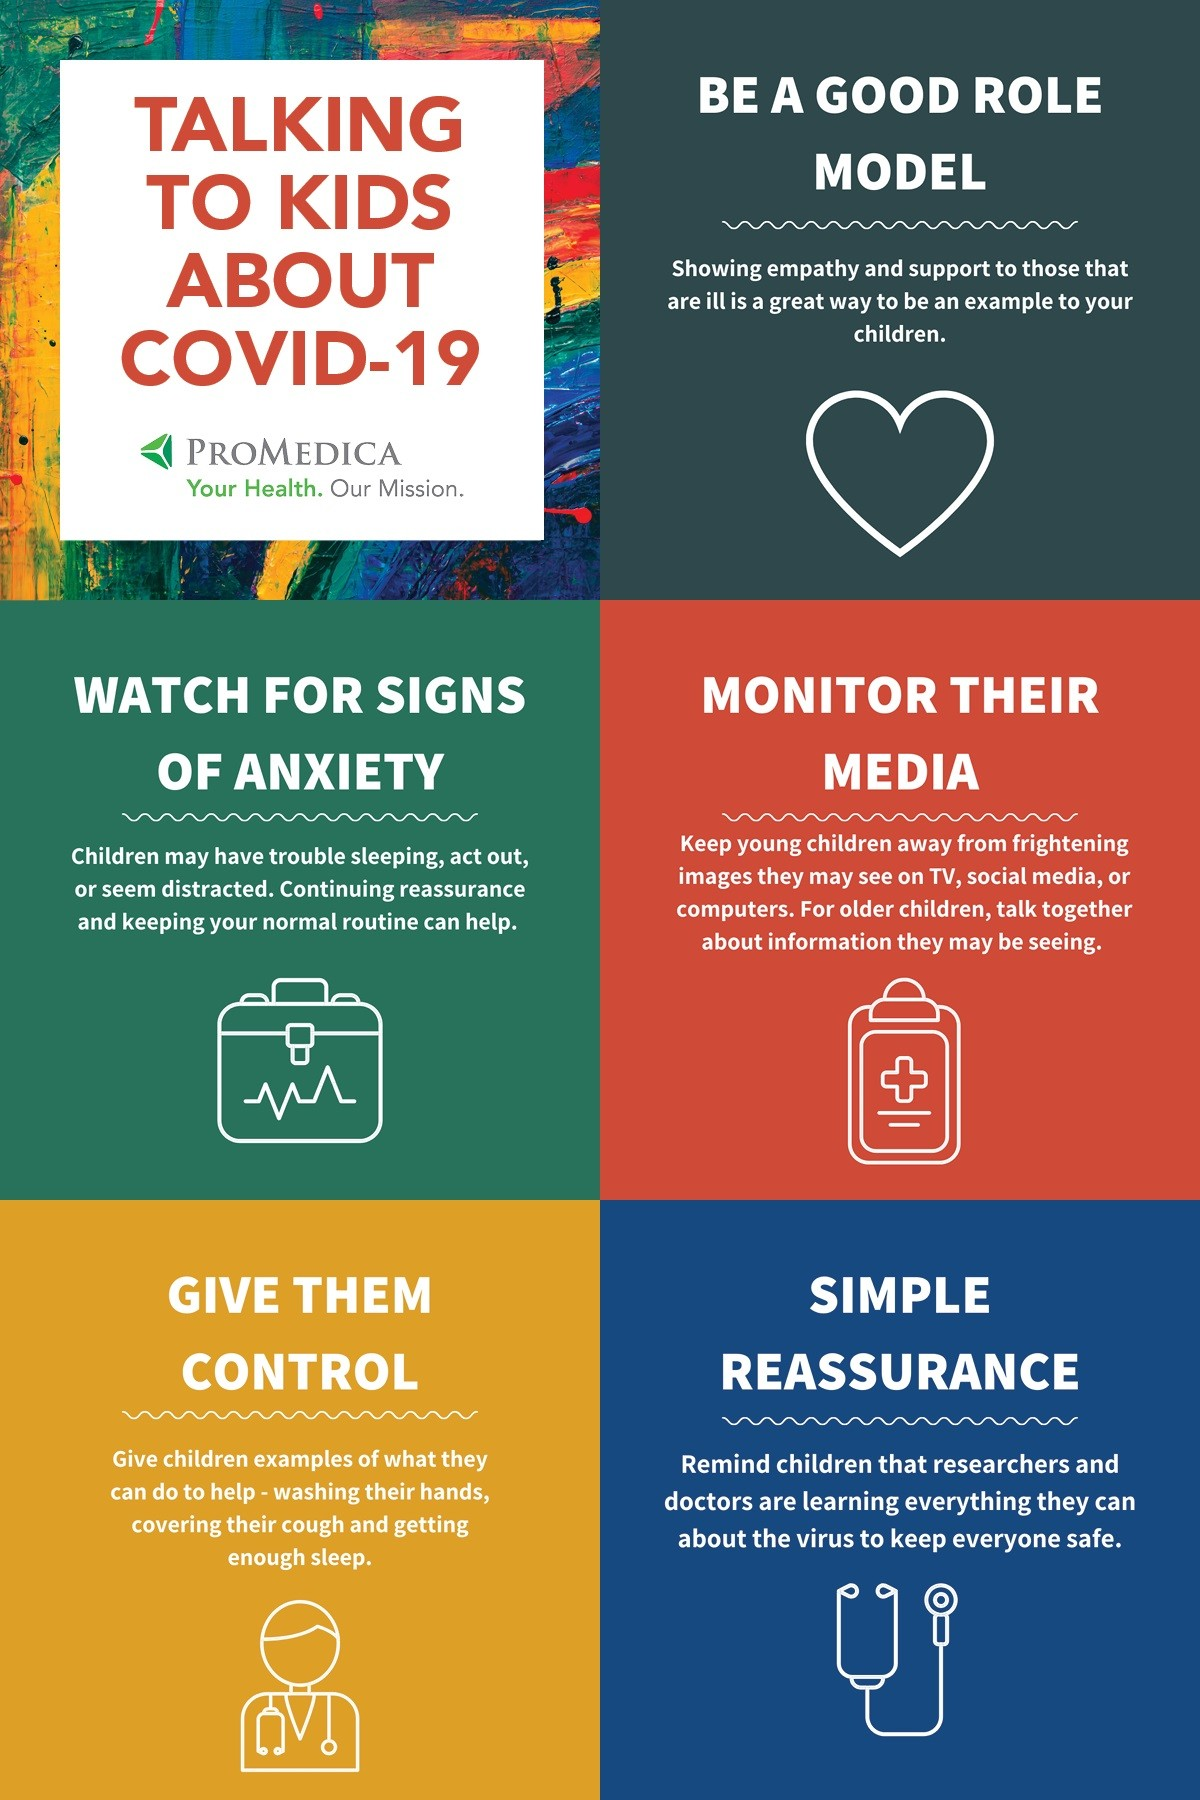 ProMedica and the American Academy of Pediatrics also offers the following tips for talking to kids about COVID-19.